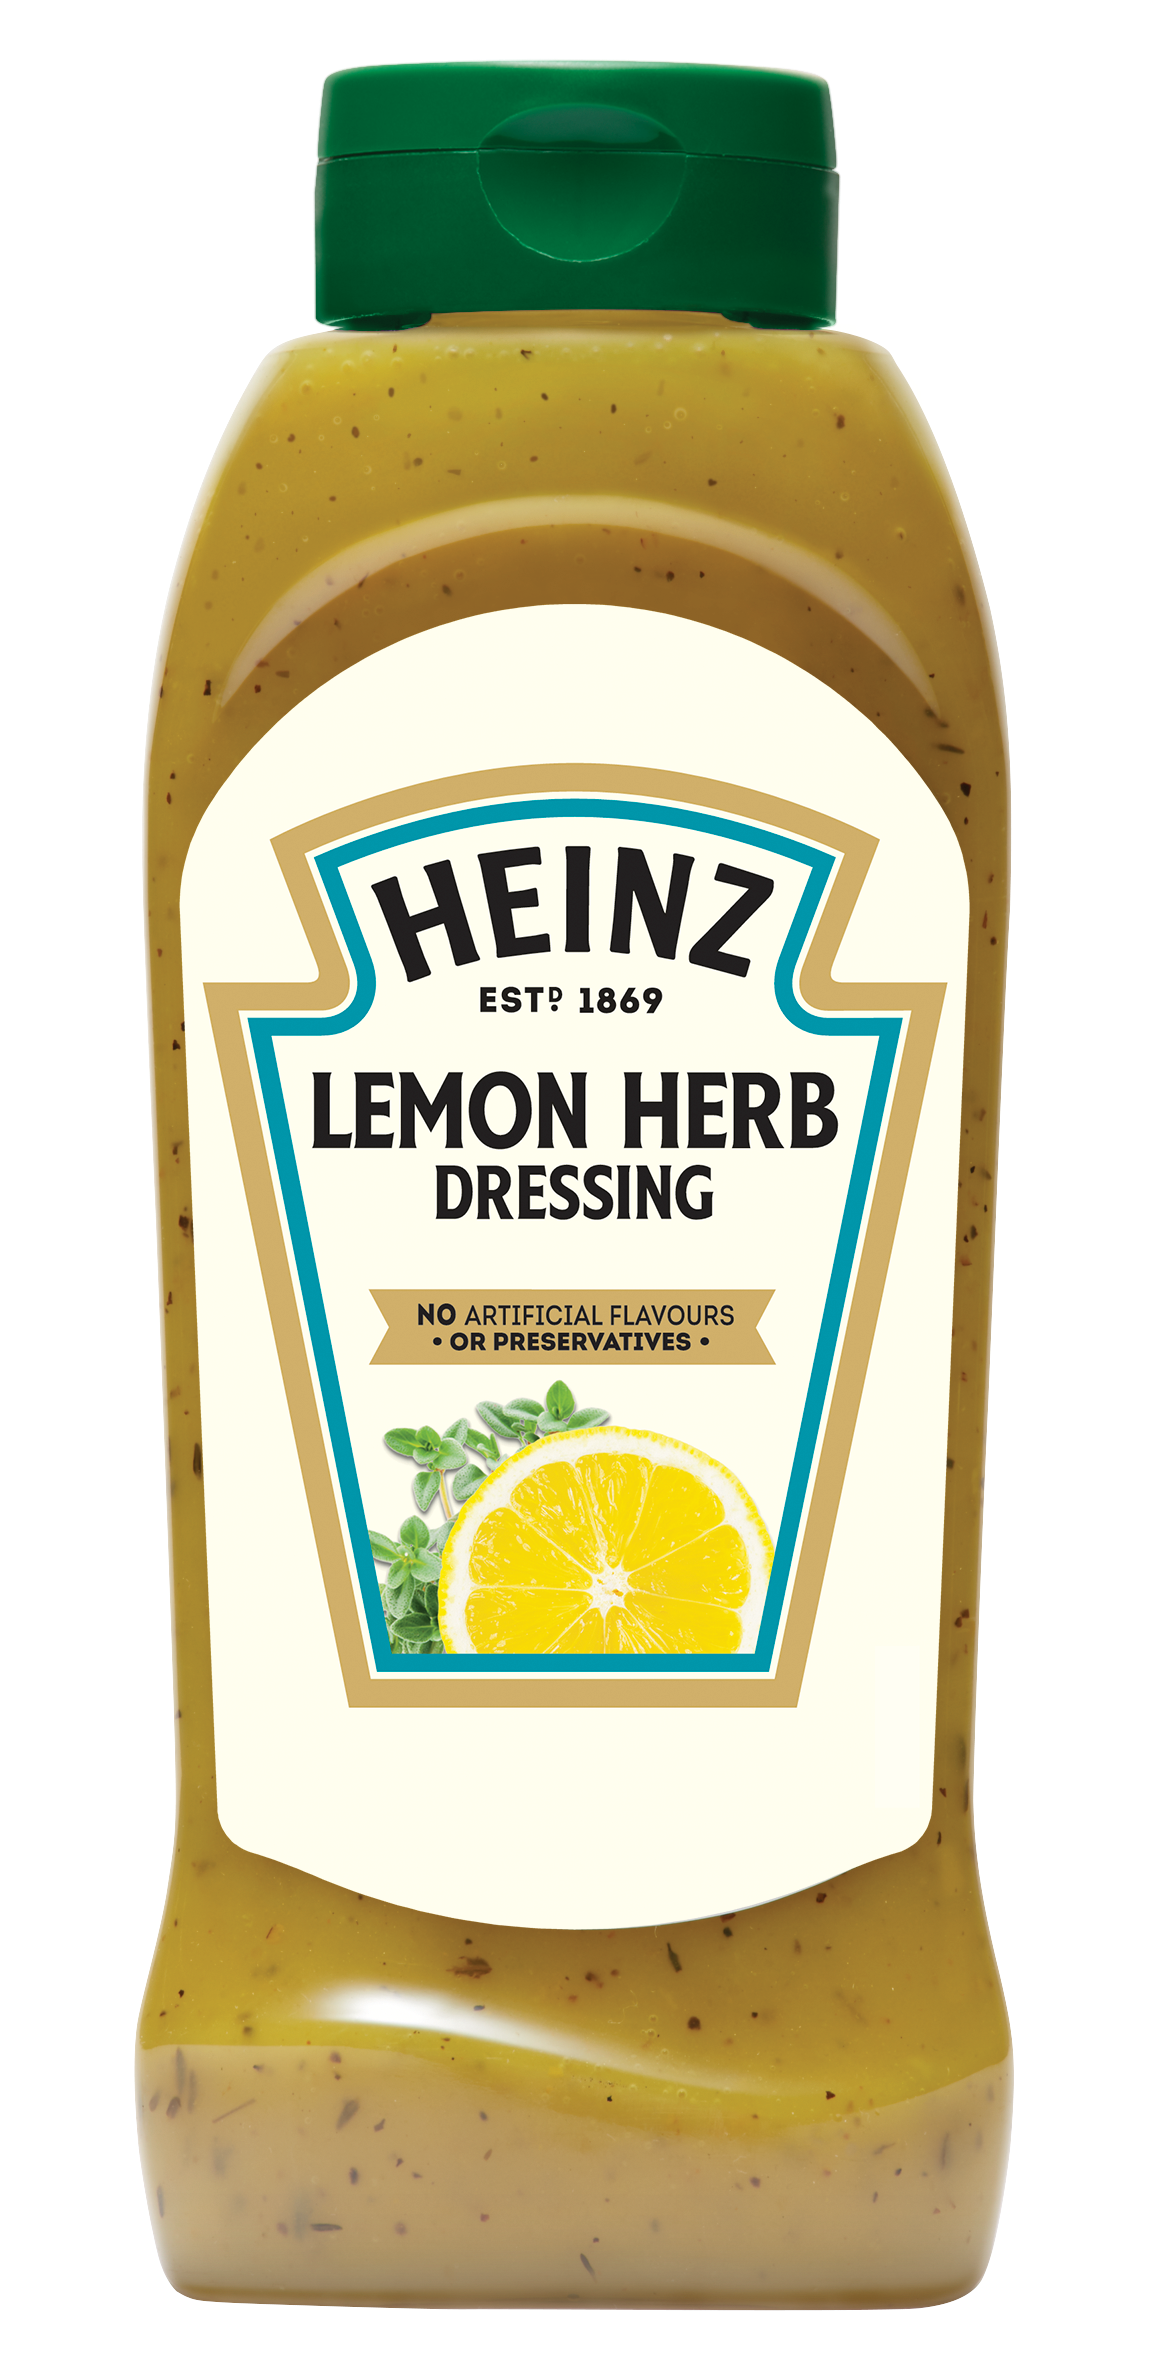 Heinz Lemon & Herb Dressing 800ml Up Right image